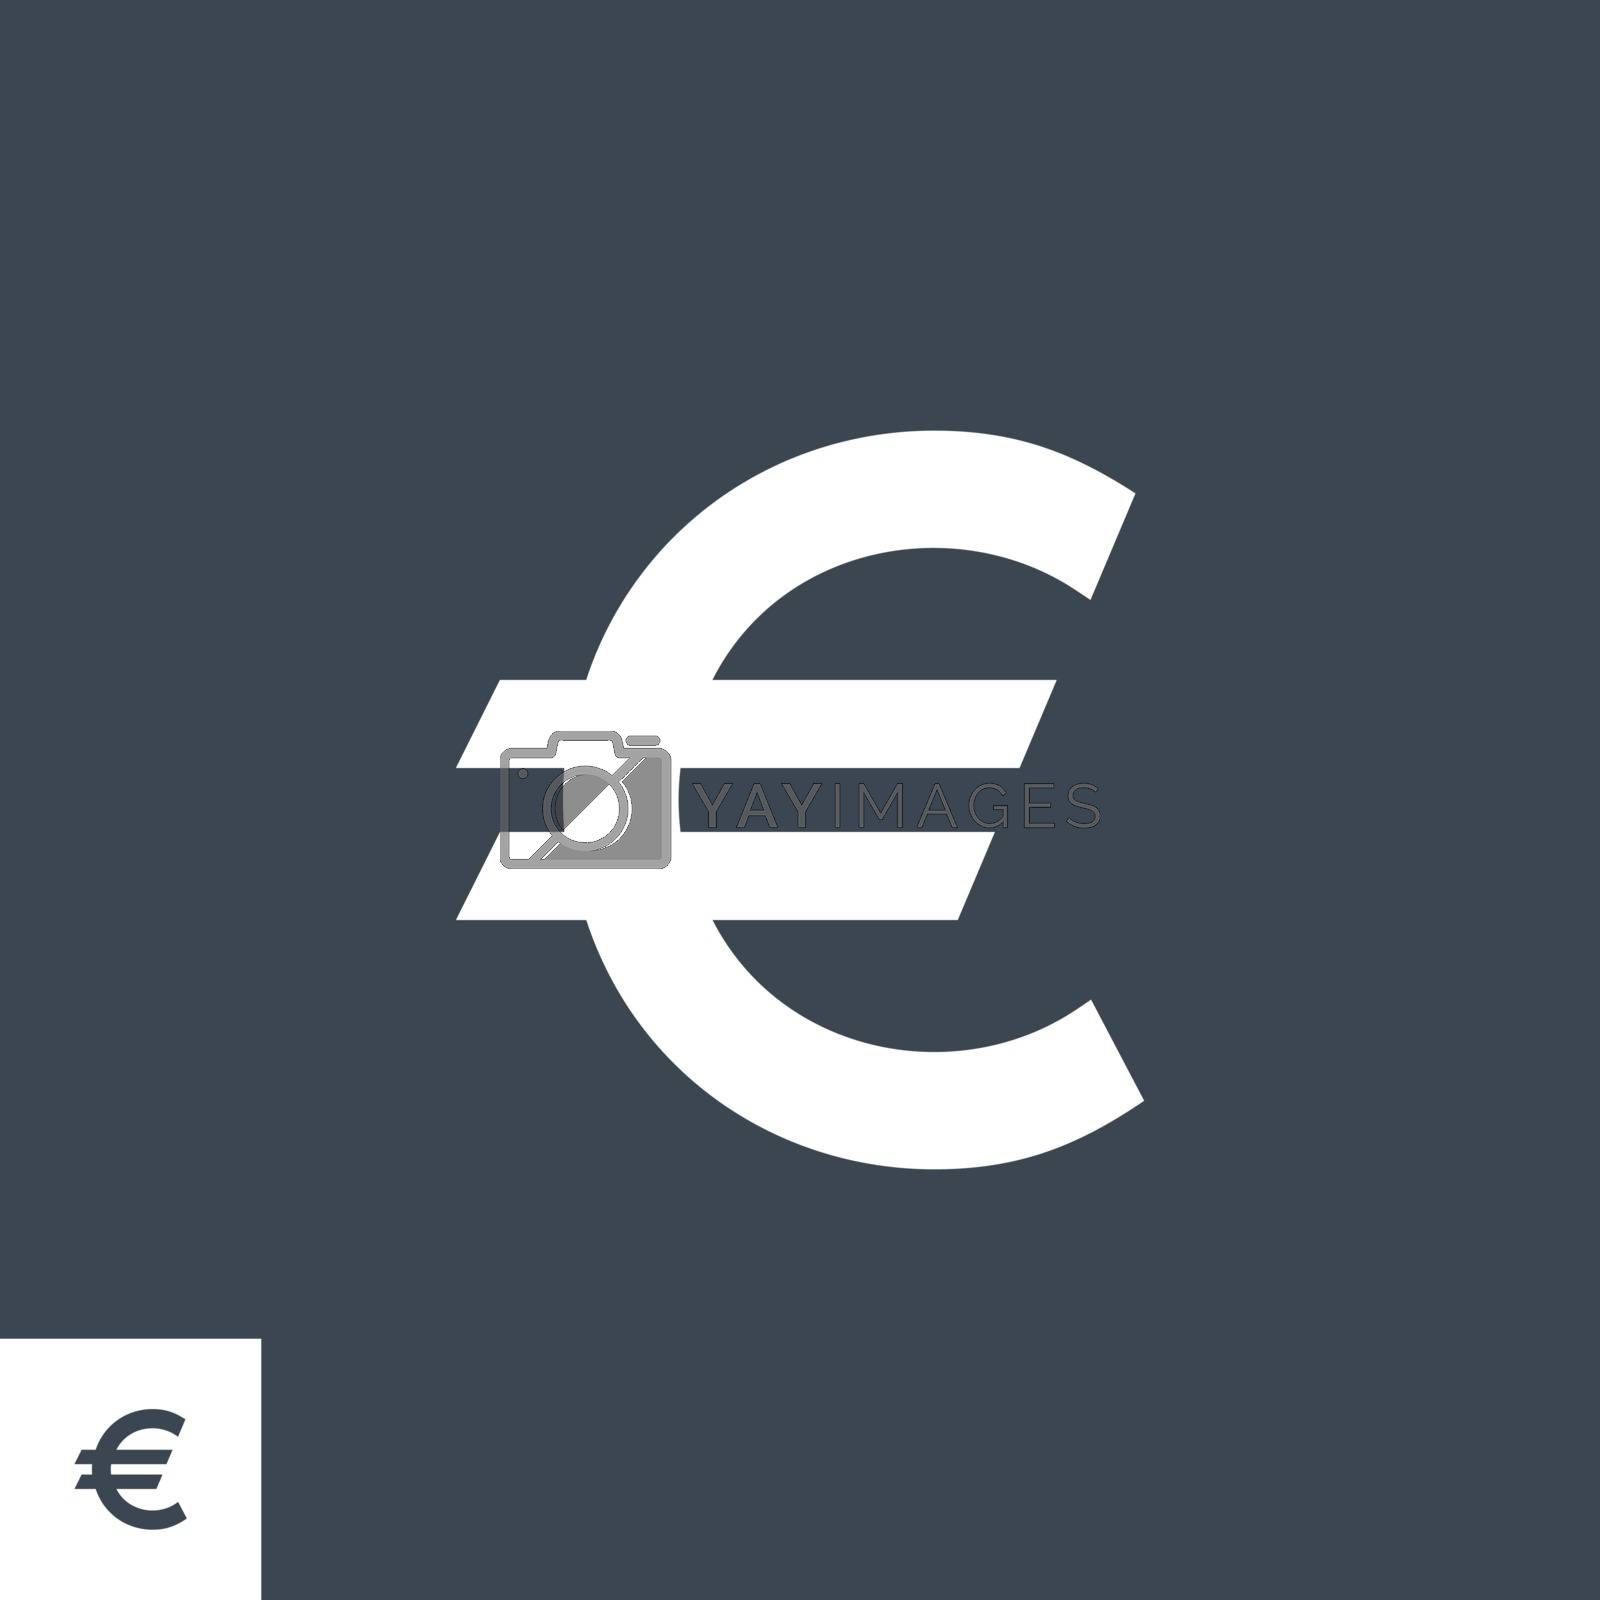 Euro Sign related vector glyph icon. Isolated on black background. Vector illustration.